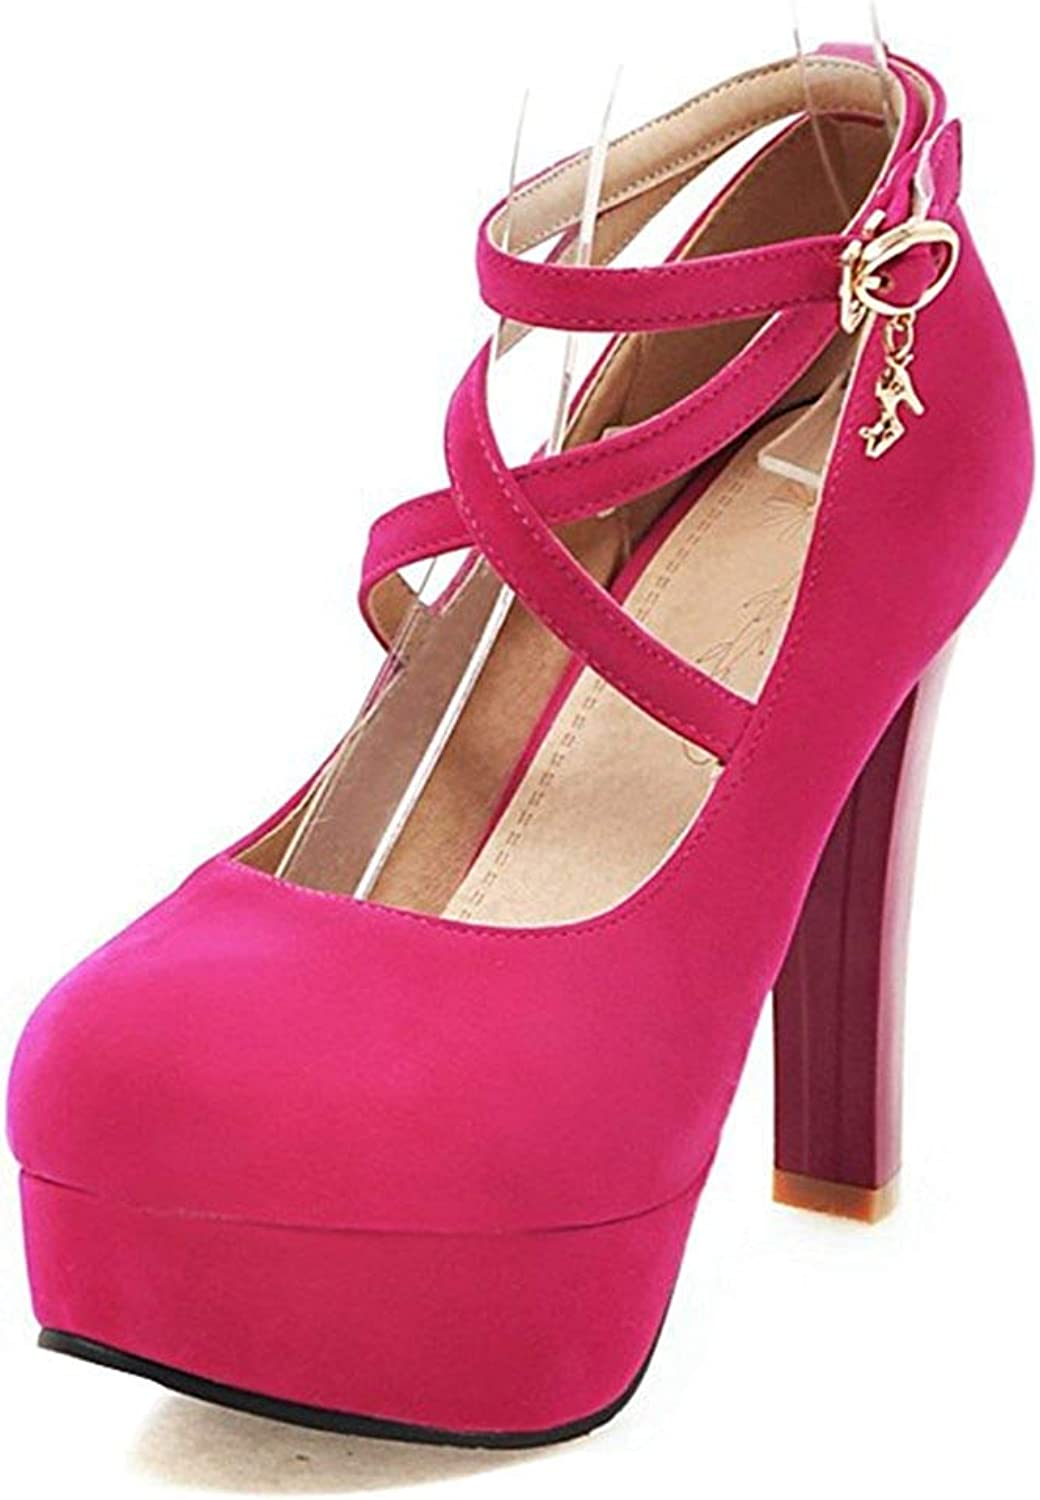 Unm Women's Fashion Buckled Dressy Strappy Round Toe High Chunky Heel Platform Pumps shoes with Ankle Strap